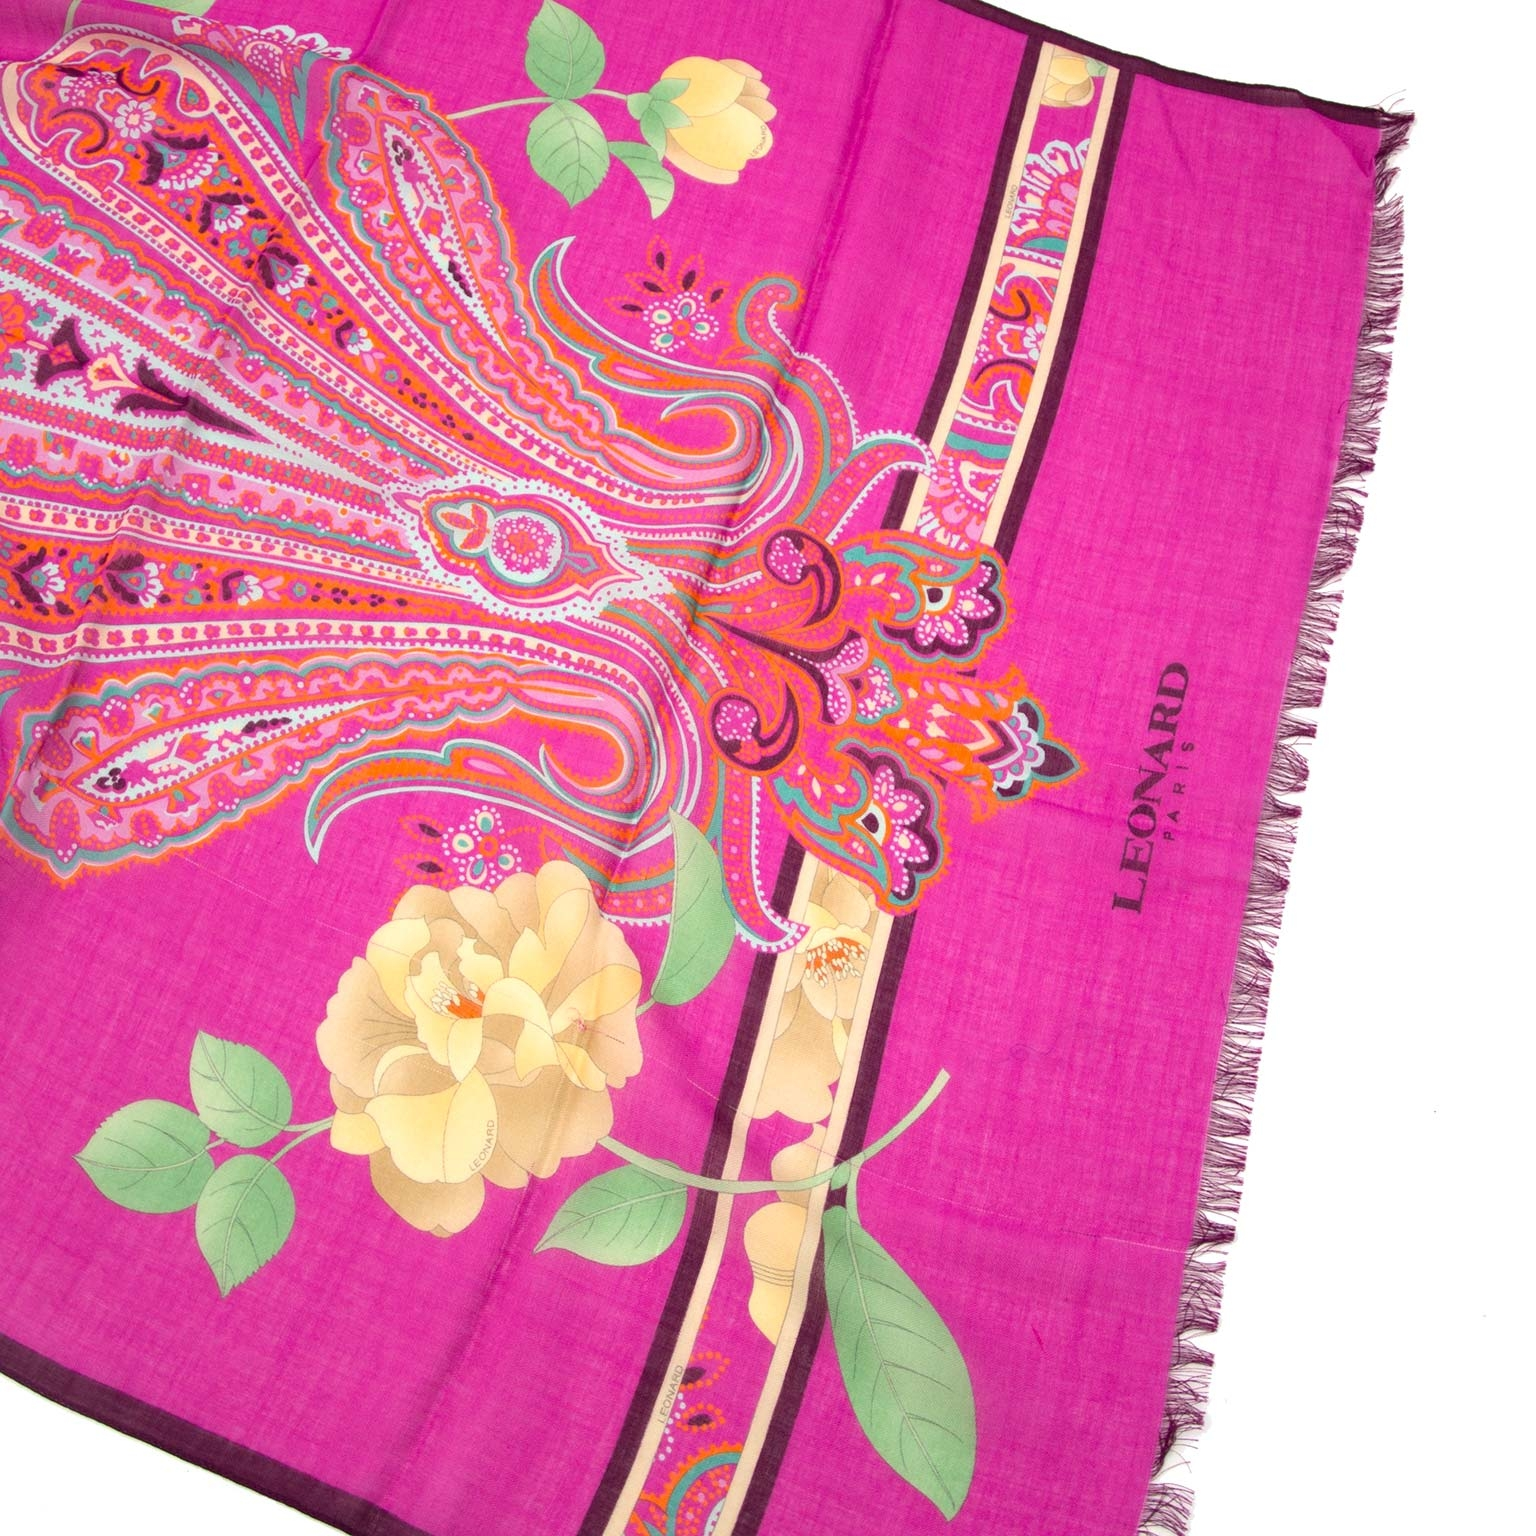 d2c83c6e2 ... Leonard Fuchsia Floral Cashmere Silk Scarf Buy authentic designer  Leonard secondhand scarves at Labellov at the